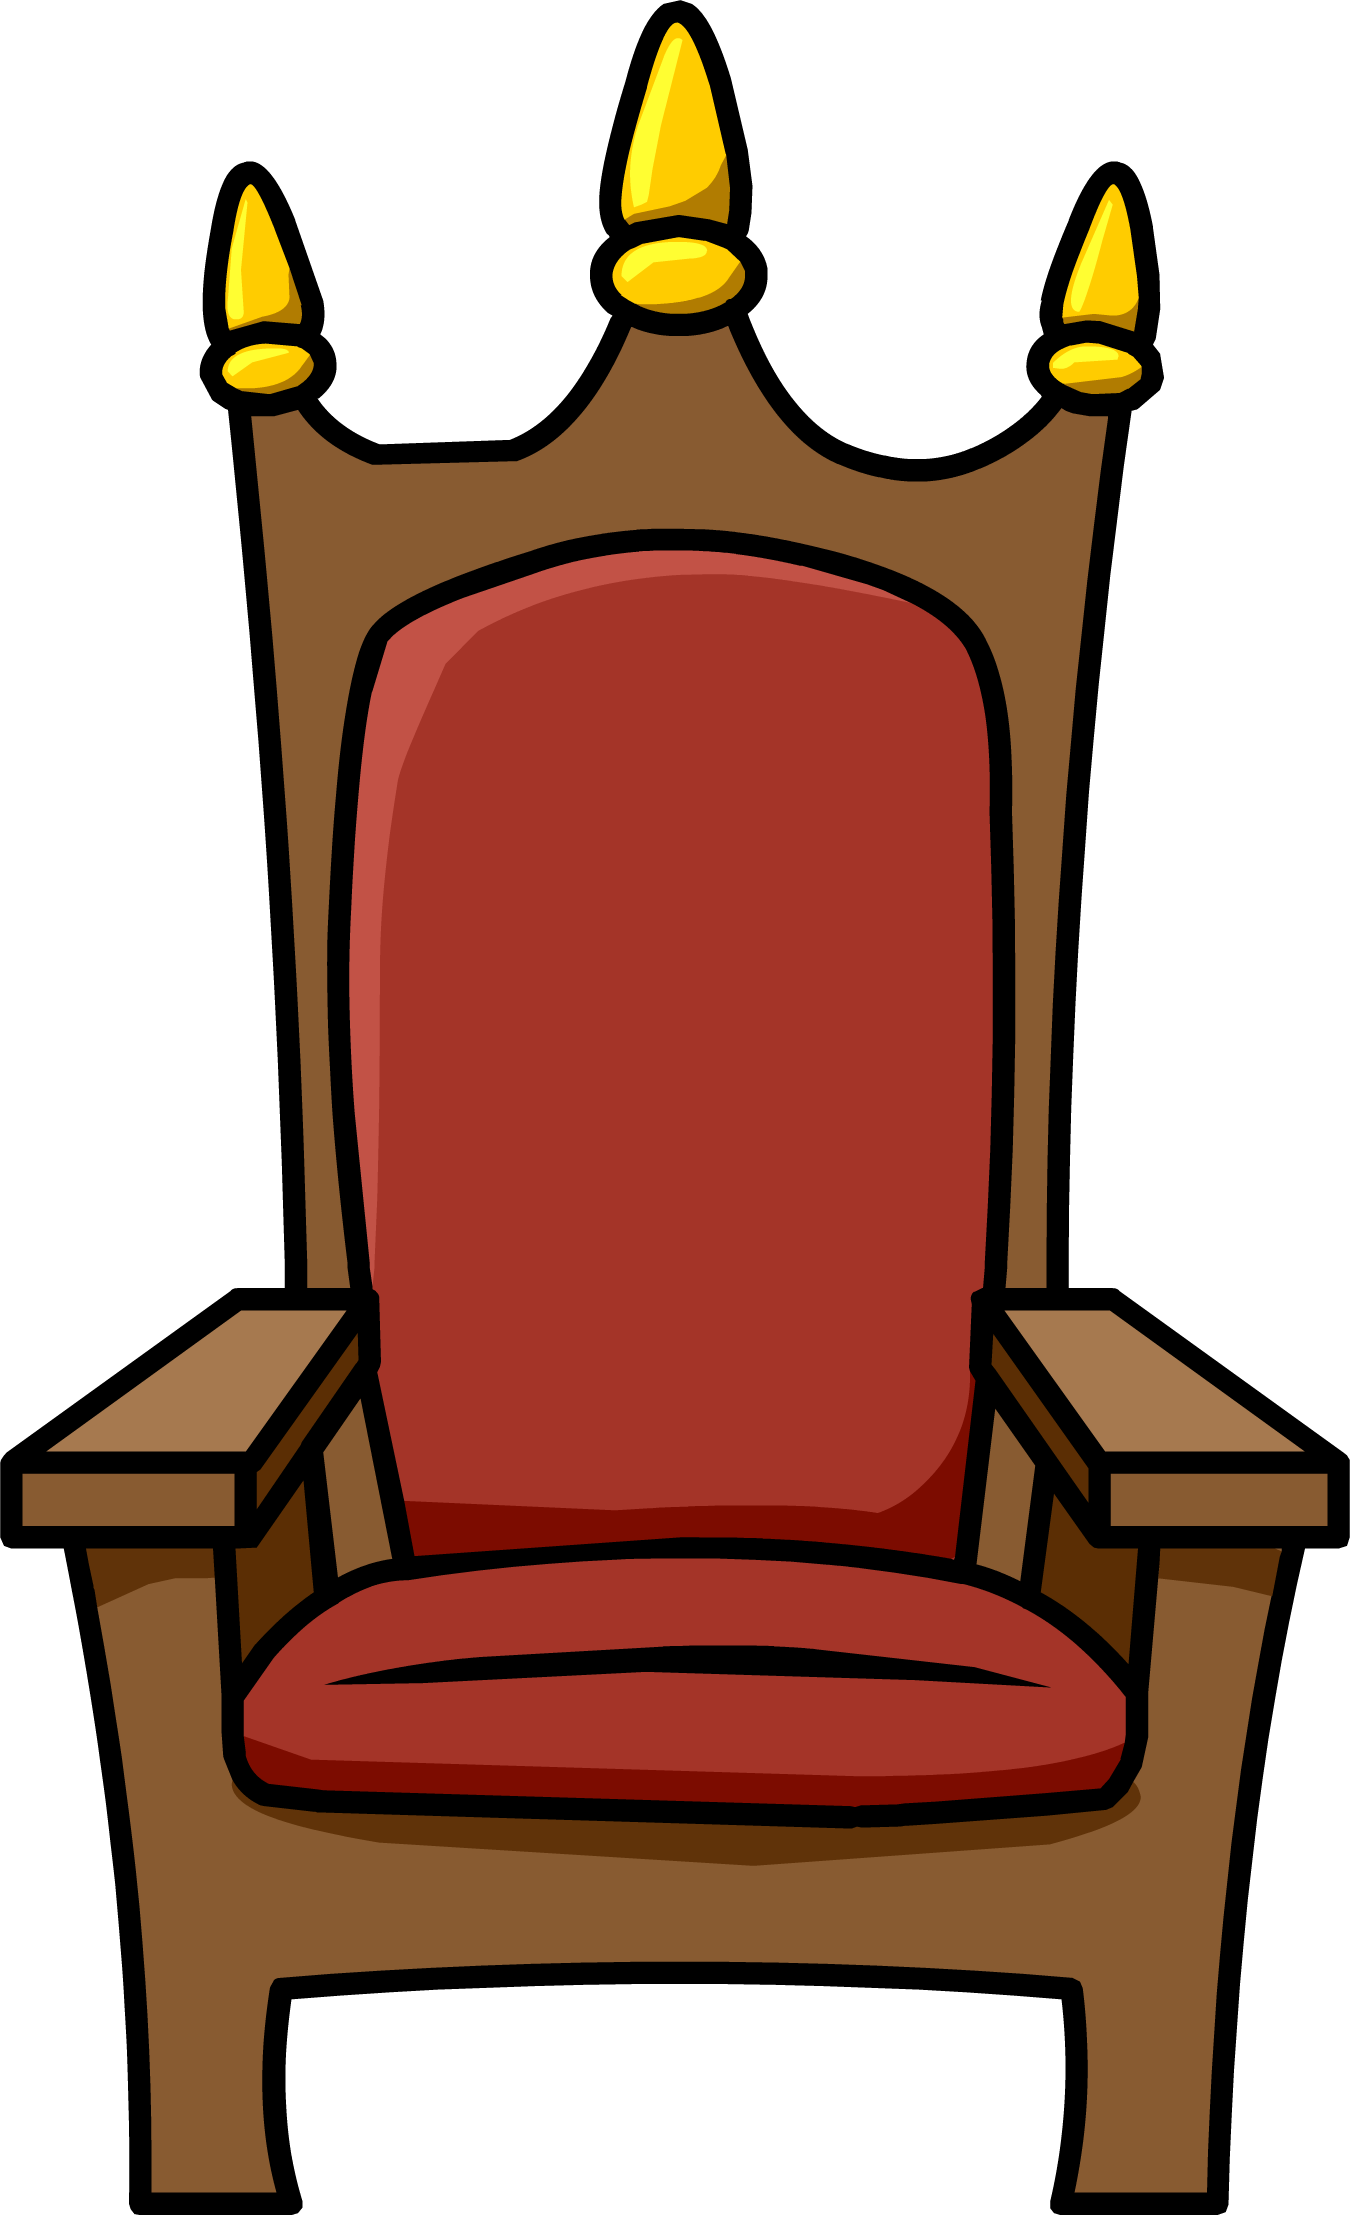 Throne Clipart & Throne Clip Art Images.